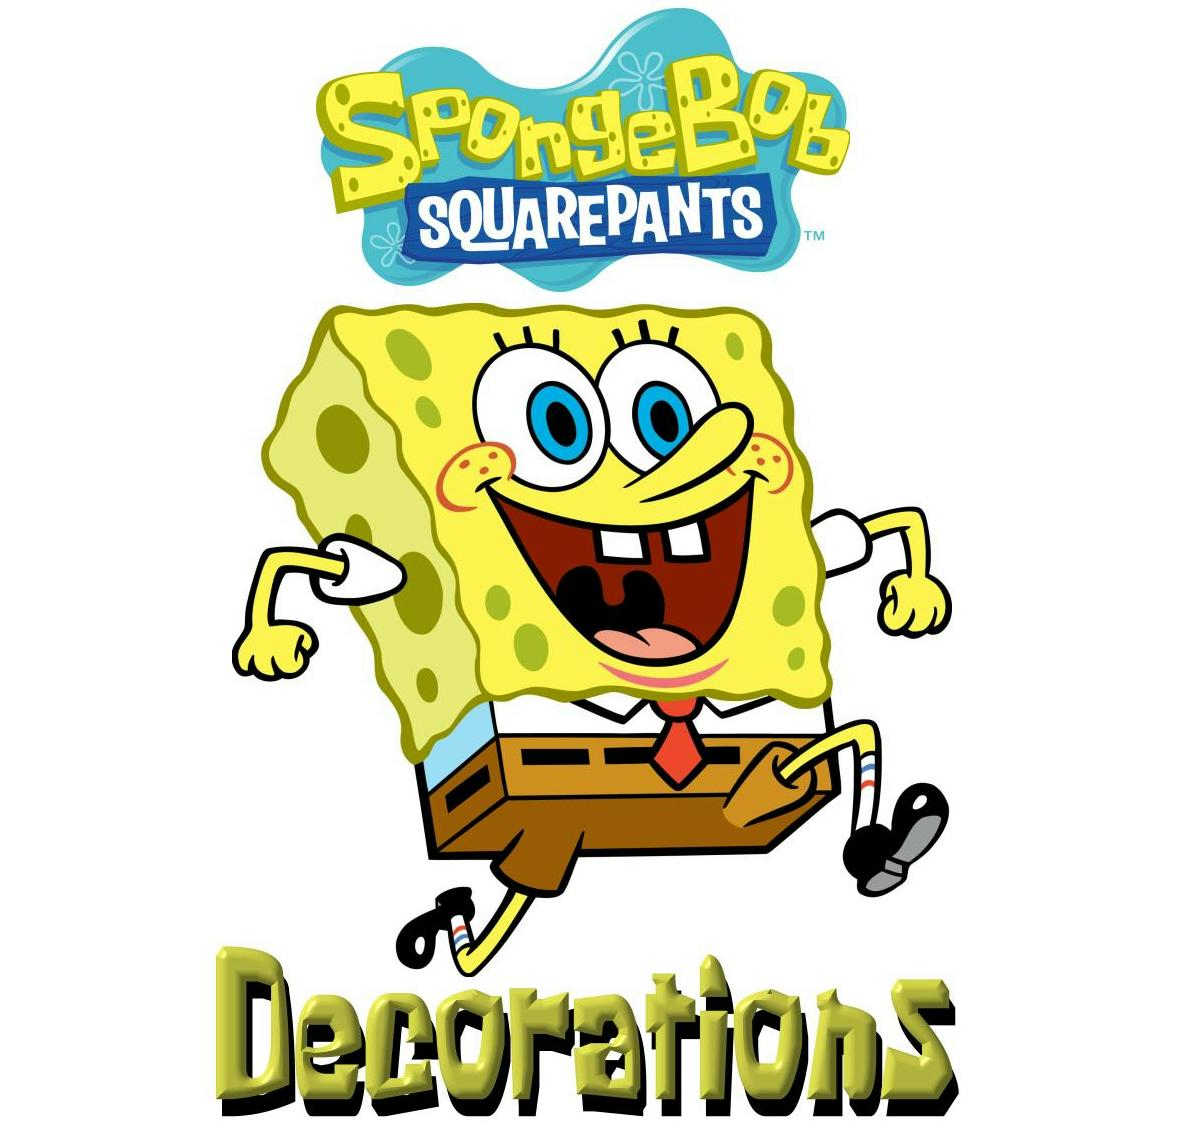 Spongebob Squarepants Decorations